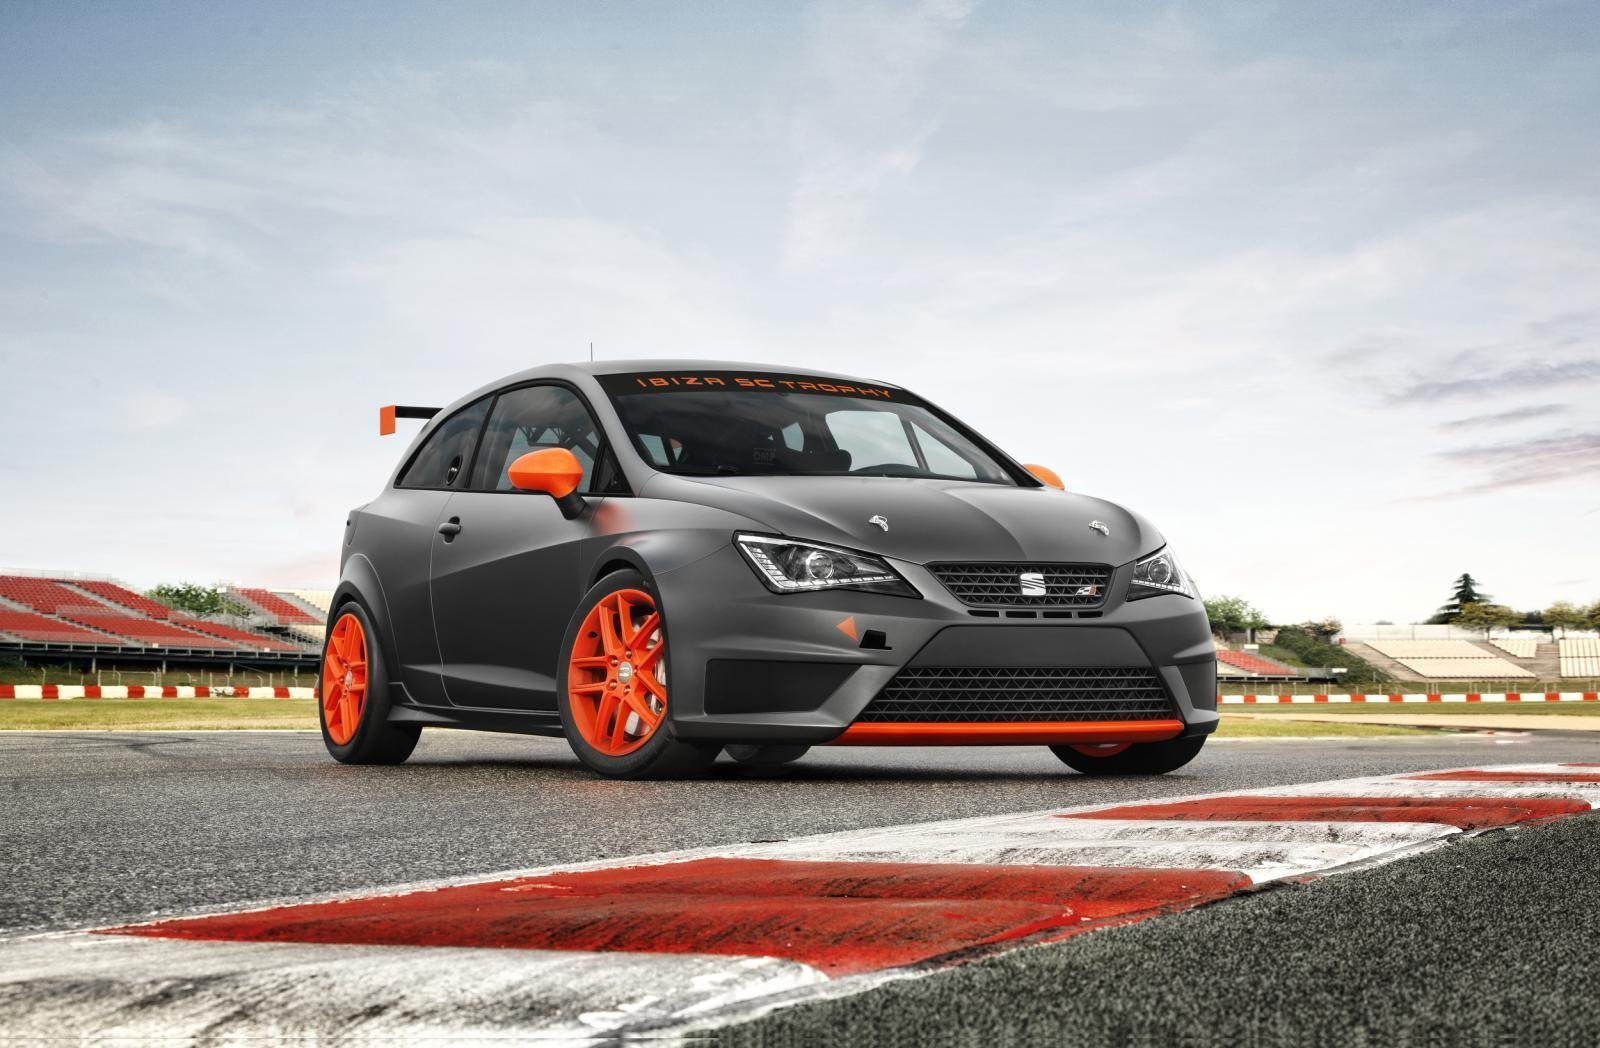 2013 seat ibiza sc trophy review top speed. Black Bedroom Furniture Sets. Home Design Ideas